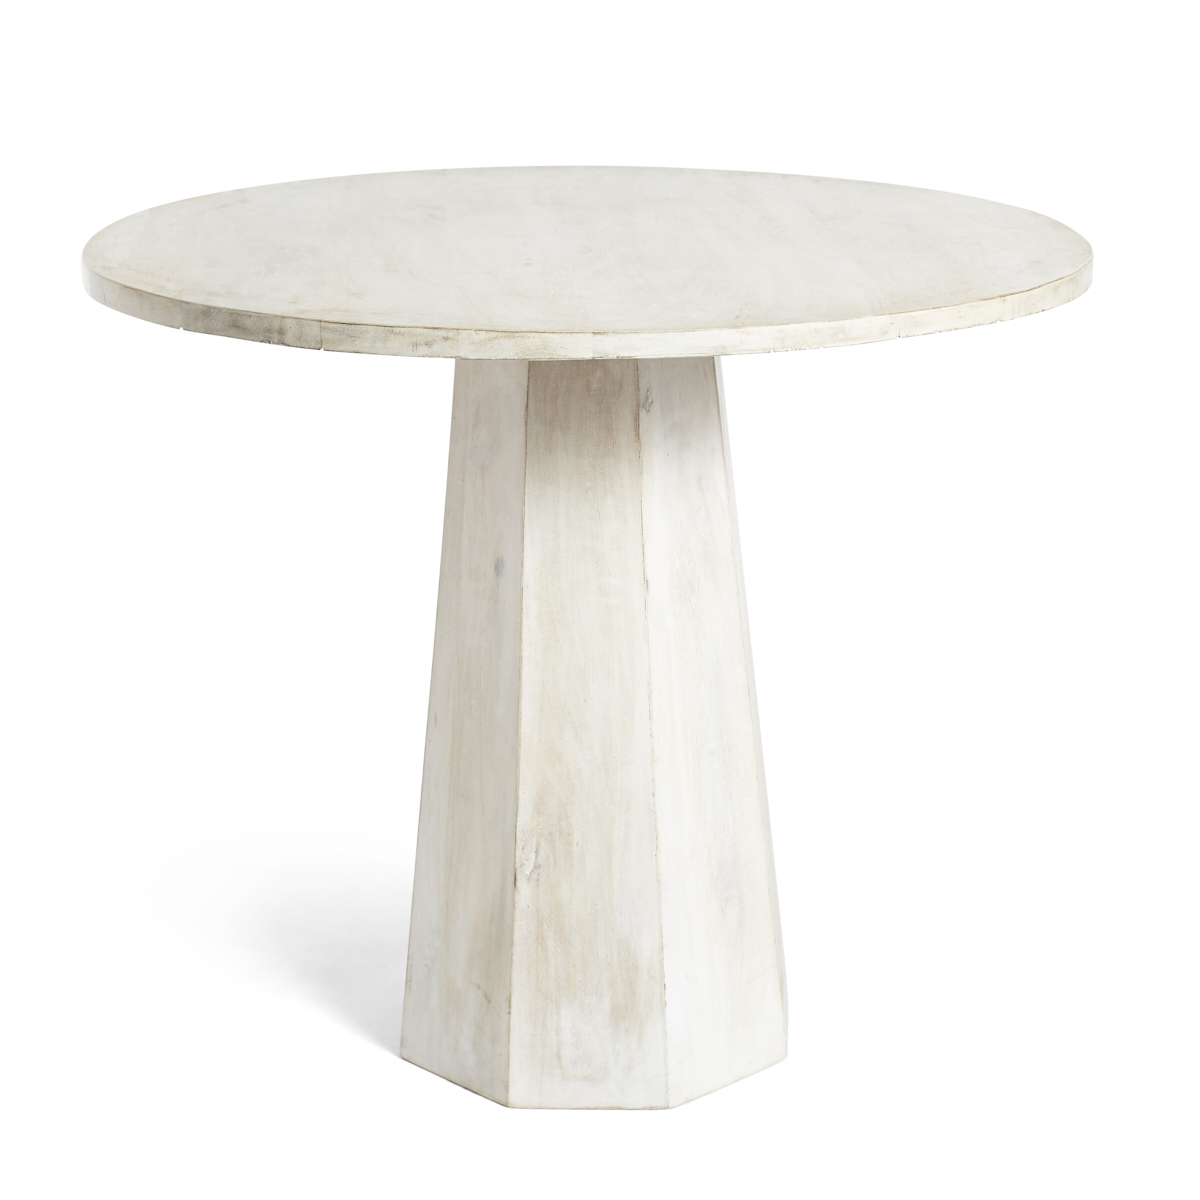 Whitewashed Pedestal Side Table | Products In 2019 Intended For Current Warner Round Pedestal Dining Tables (View 10 of 25)